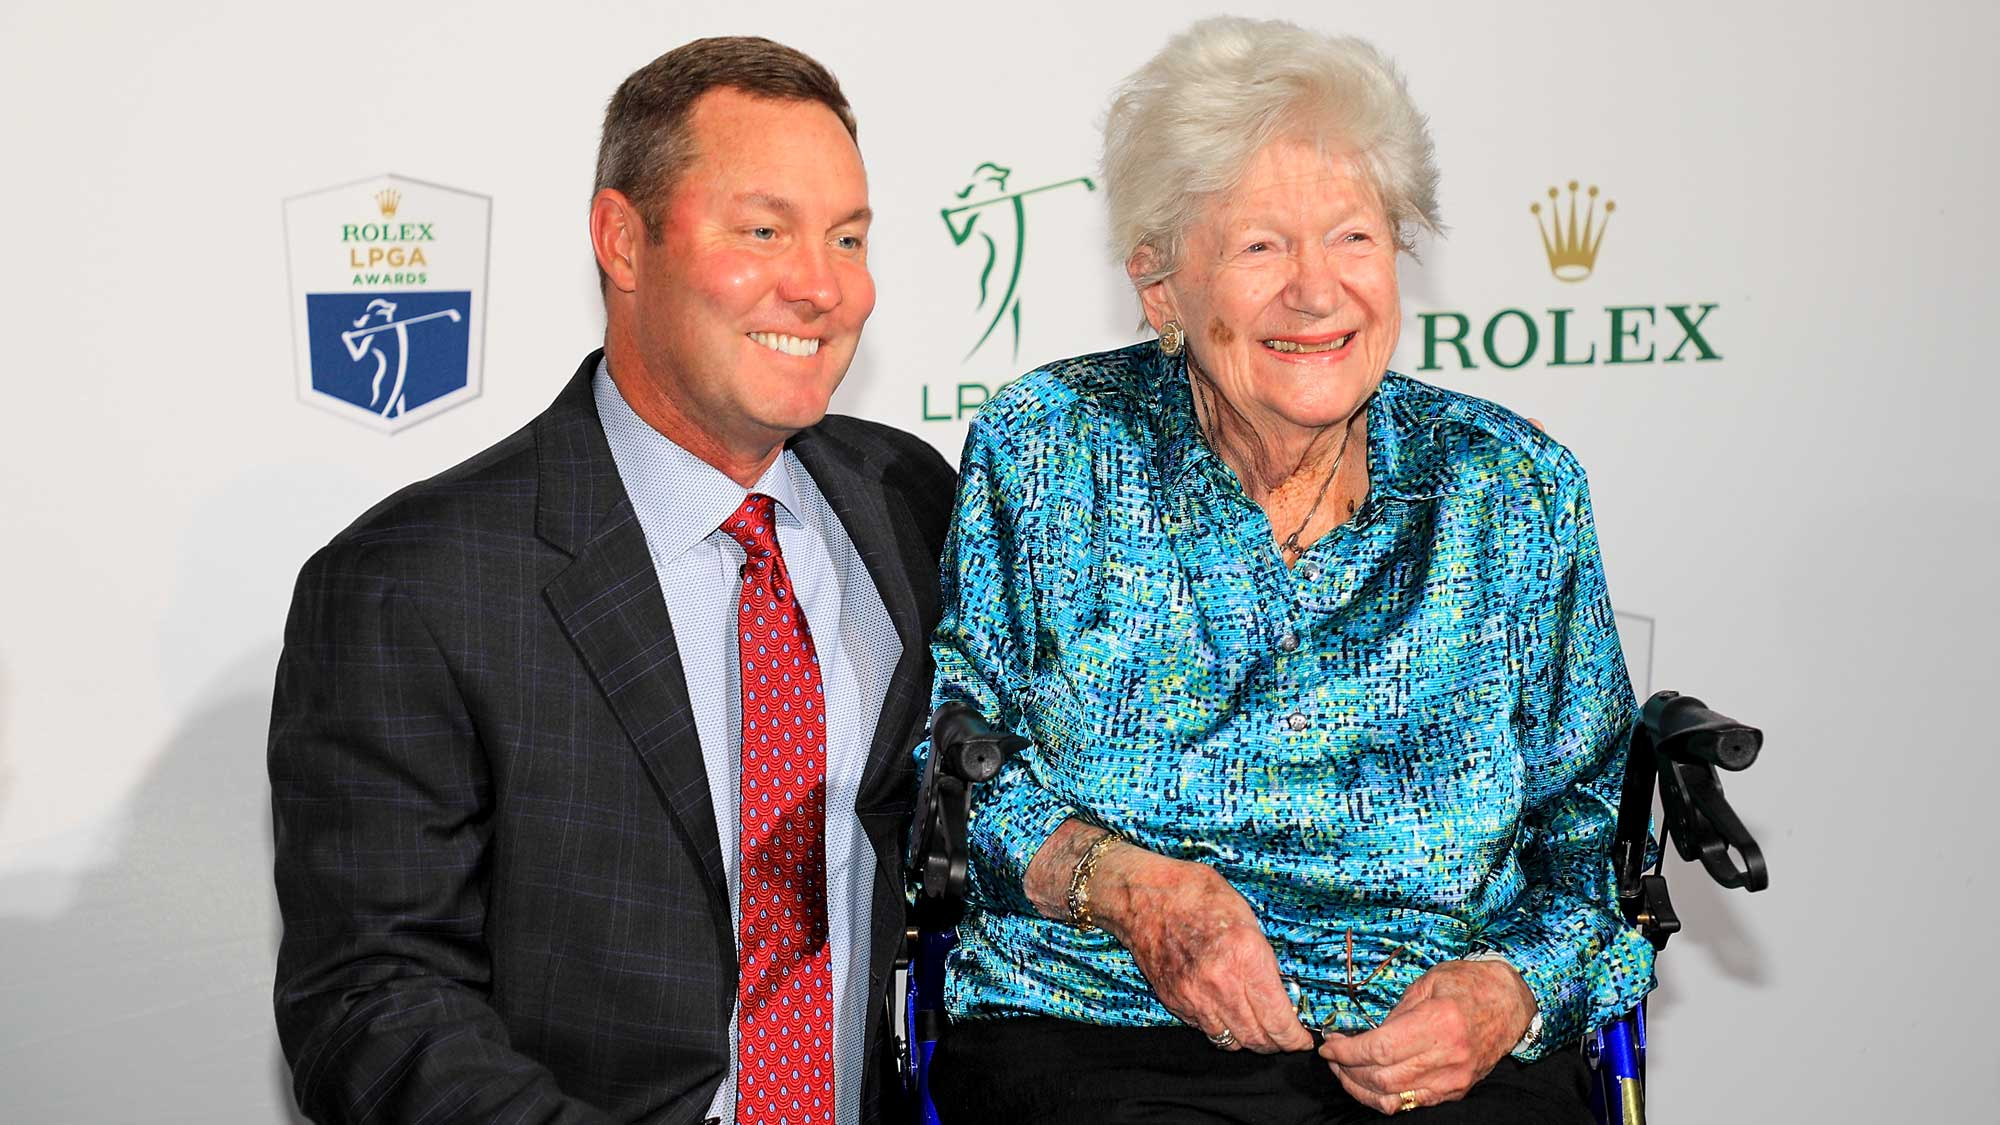 Commissioner Michael Whan (left) poses for a photo with LPGA co-founder Marilynn Smith on the green carpet during the LPGA Rolex Players Awards at the Ritz-Carlton Golf Resort